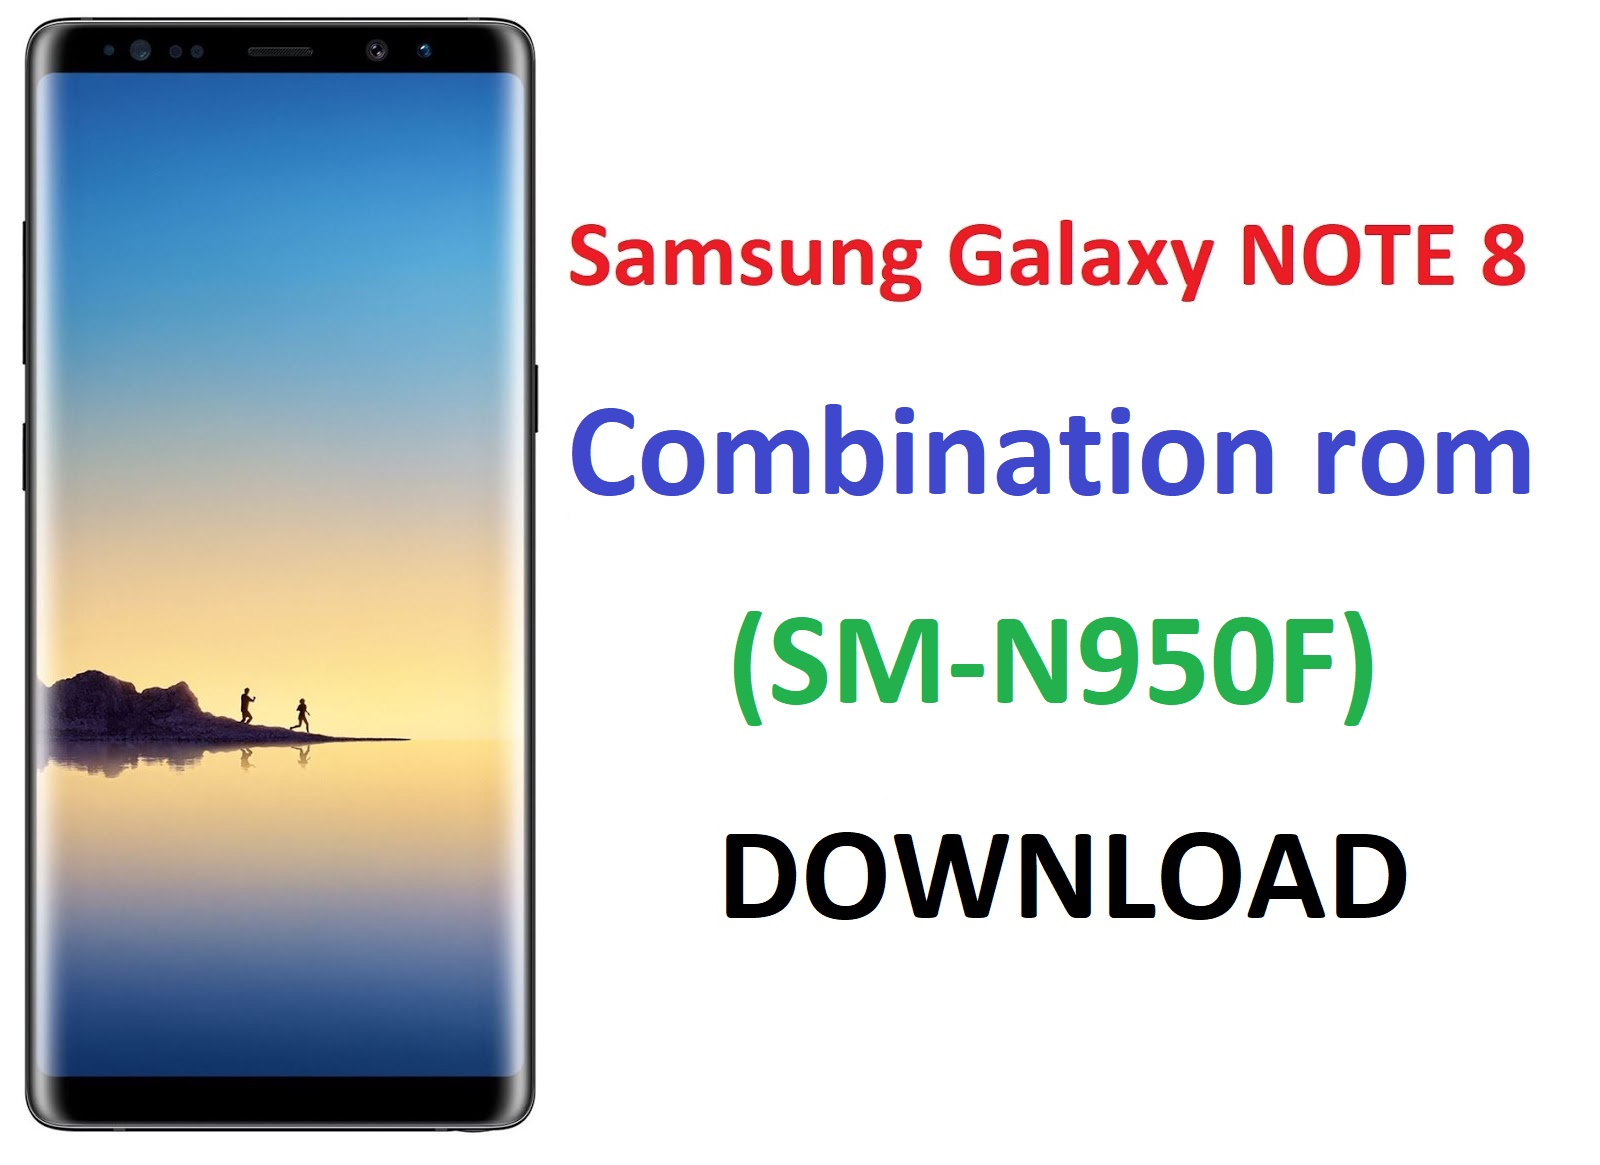 sm-n950f Note Galaxy Rom Combination World - 8 Samsung Download